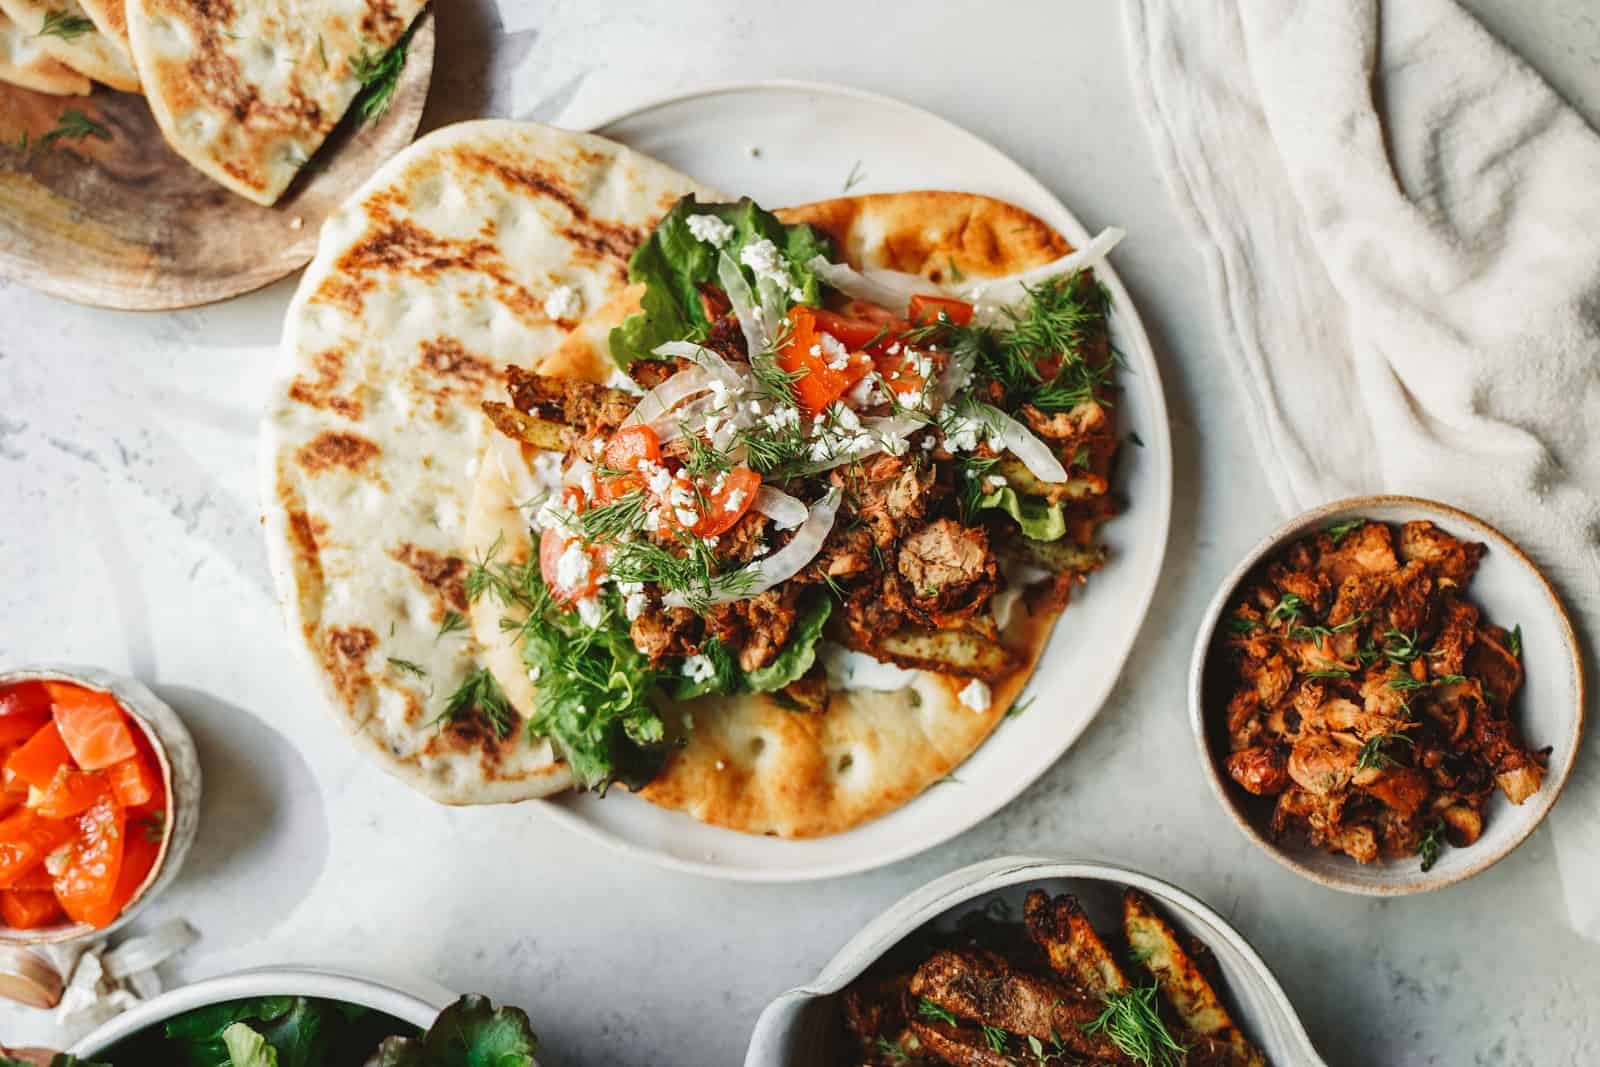 Yummy jackfruit gyros laid out on fresh pita with fresh herbs and tomato toppings. One of the best vegan meals.